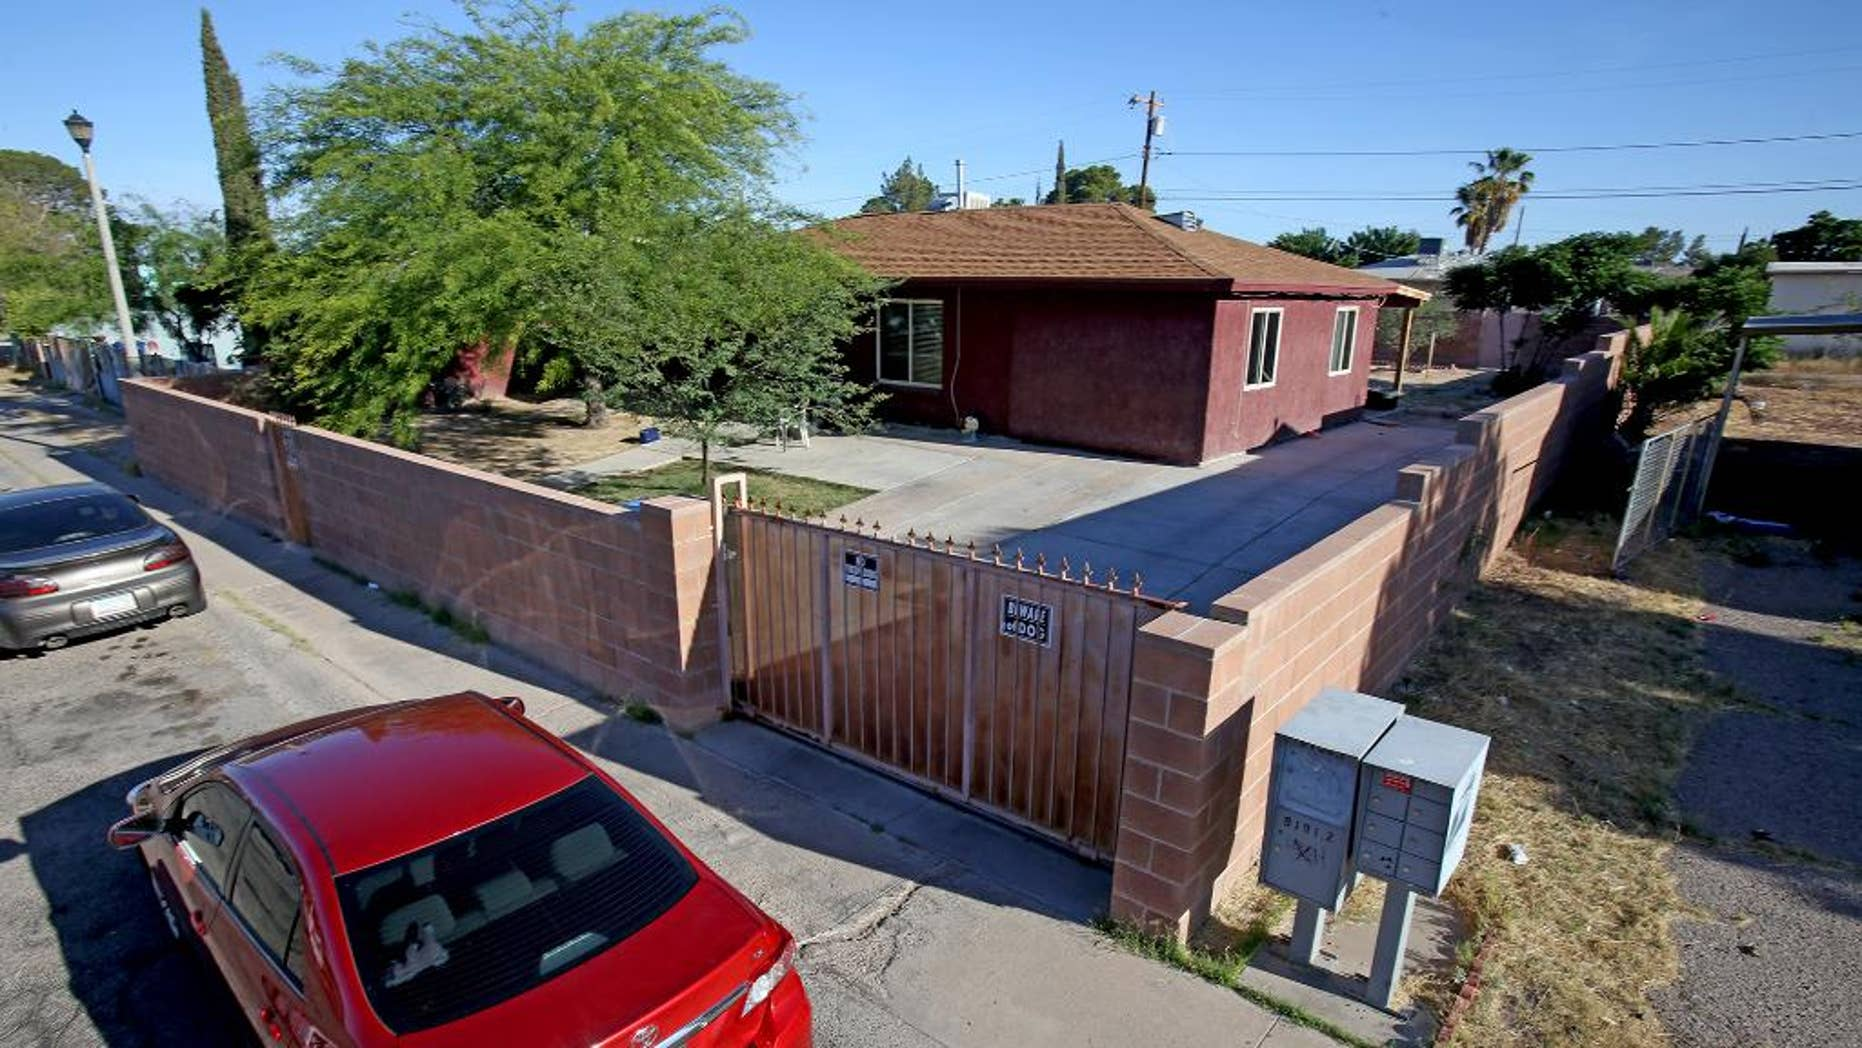 """Police say five people were shot to death in a reported murder-suicide Tuesday evening at this home on the 800 block of West Calle Medina, Tucson, Ariz., shown Wednesday, May 13, 2015. Police got word of the bloodshed from a man who went to the house to meet someone, """"peeked inside and noticed one individual who appeared to be deceased with multiple gunshot wounds,"""" police Sgt. Pete Dugan said. (A.E. Araiza/Arizona Daily Star via AP)  ALL LOCAL TELEVISION OUT; PAC-12 OUT; MANDATORY CREDIT; GREEN VALLEY NEWS OUT; MANDATORY CREDIT"""